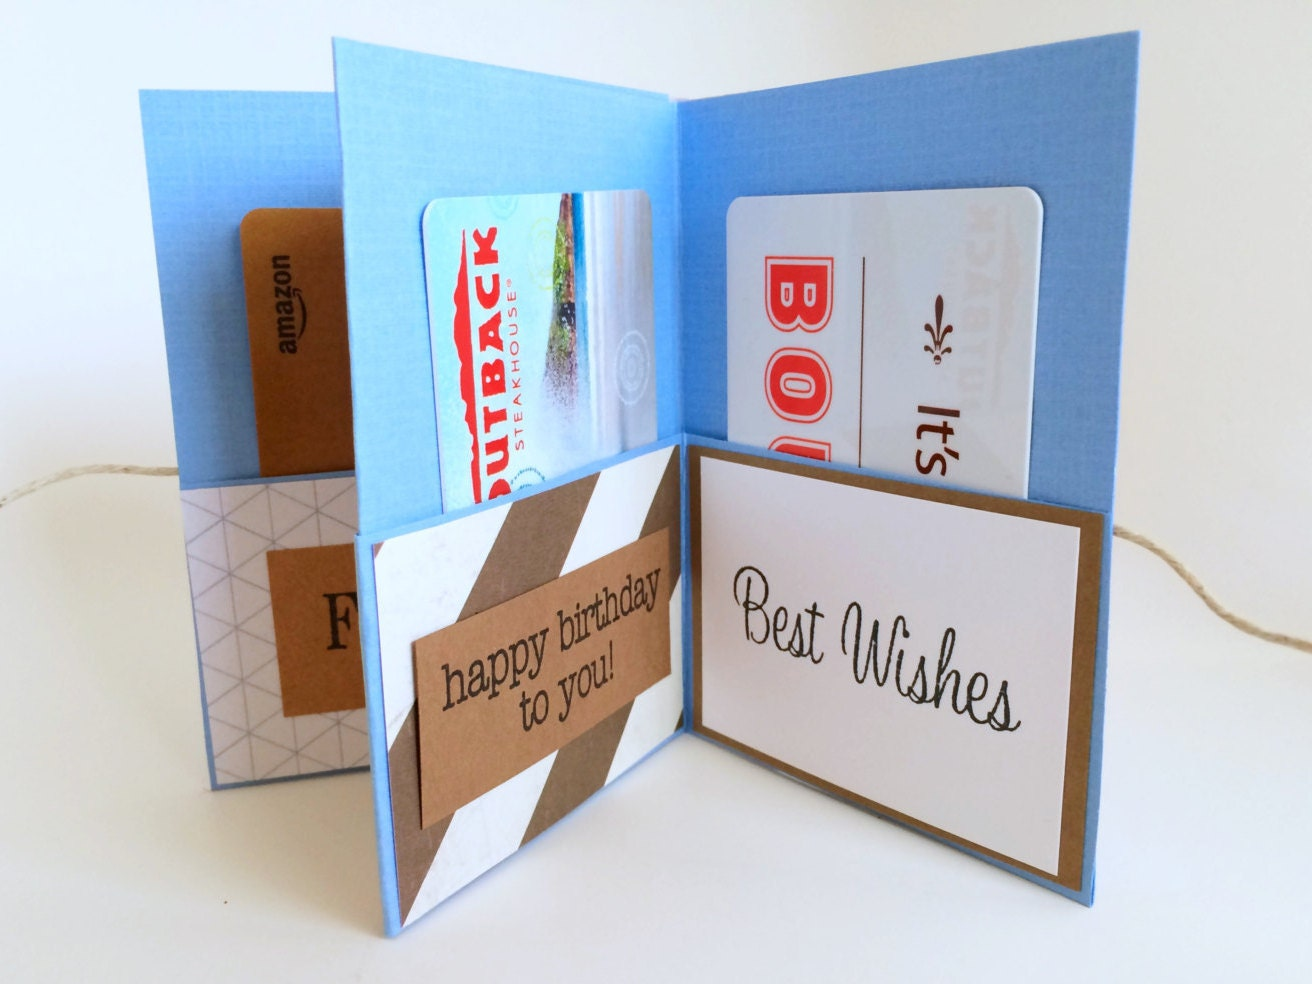 mini celebration gift card book gift card holder happy, Birthday card